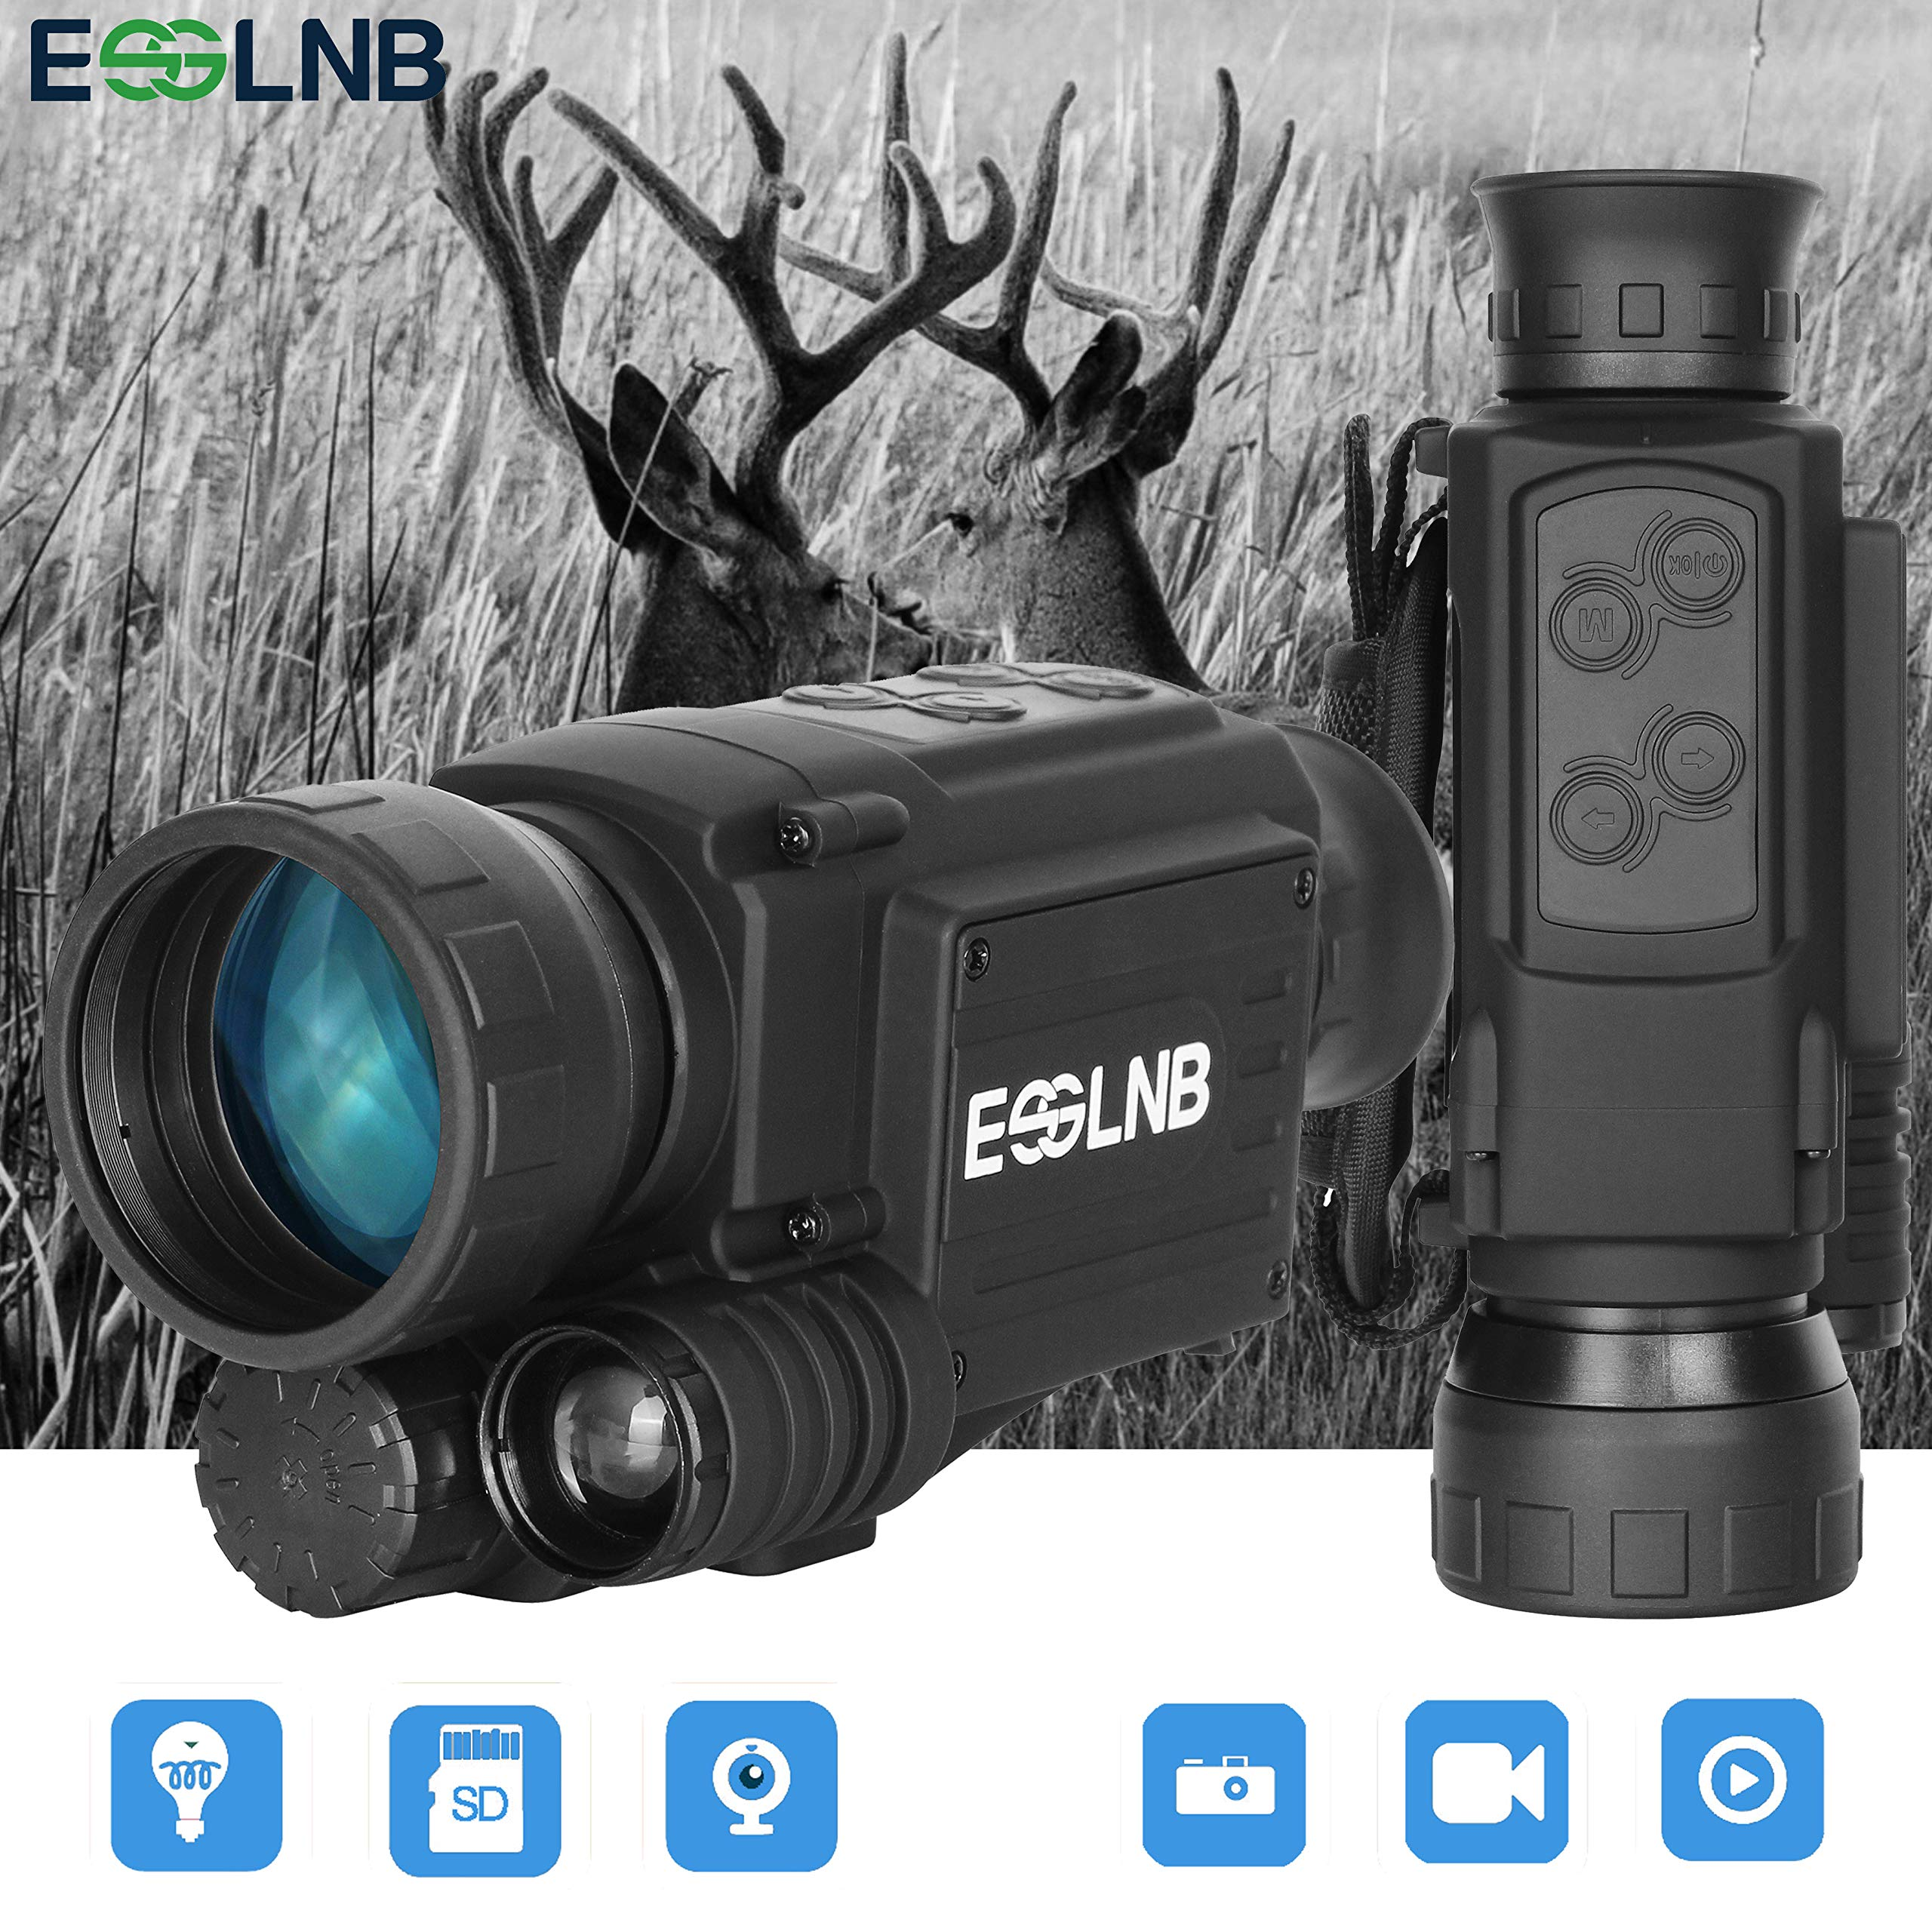 ESSLNB Night Vision Monocular 40mm Night Vision Infrared Scope for Night Hunting 4.5X Digital Night Vision IR Camera 656ft LCOS Screen 8GB TF Card Recording Image and Video Playback Function by ESSLNB